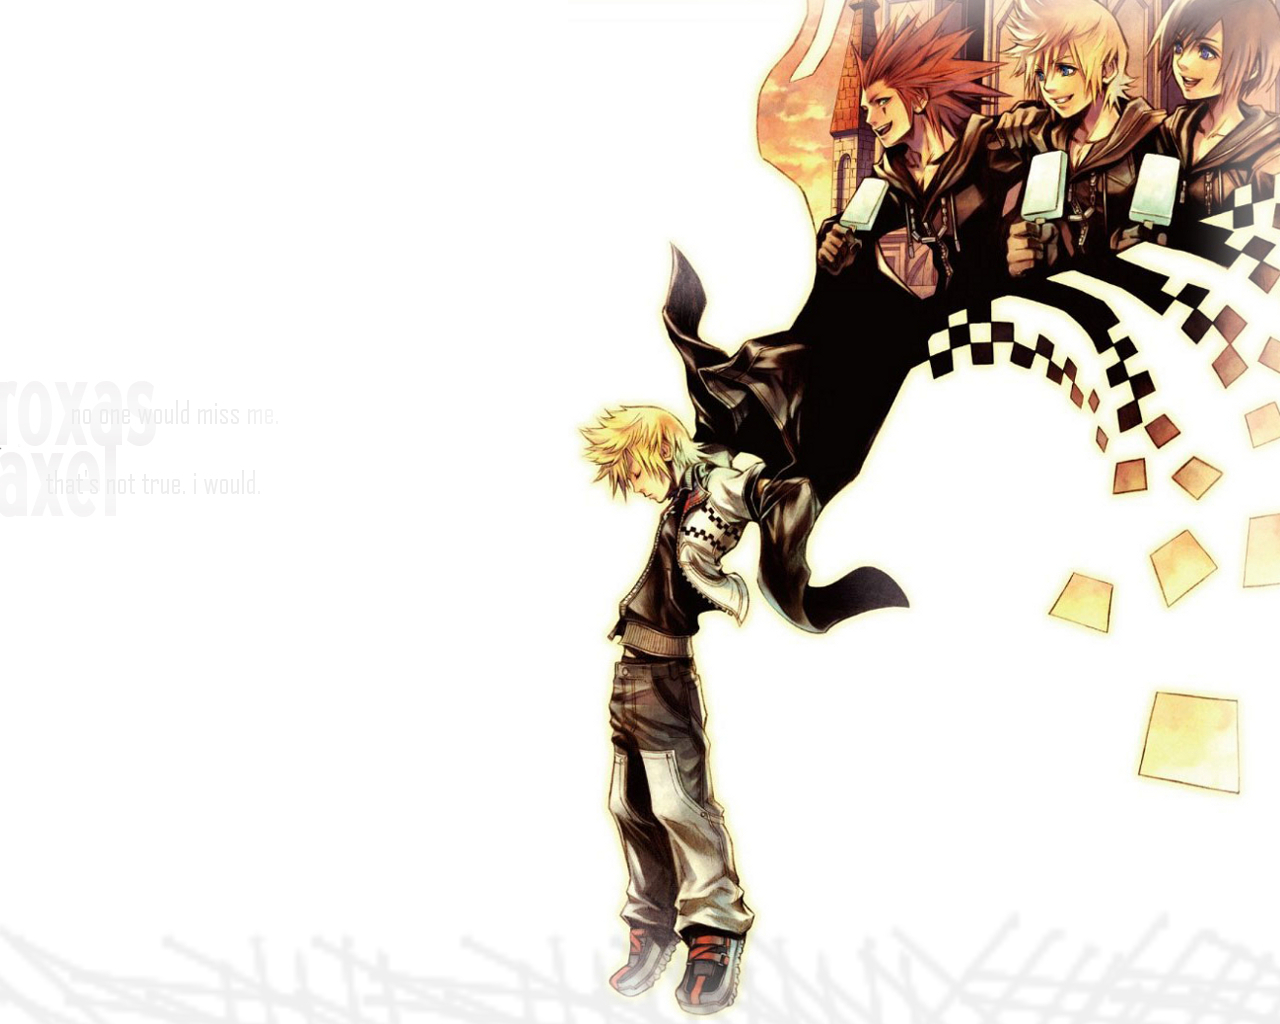 kingdom Hearts 3582 days wallpaper   ForWallpapercom 1280x1024